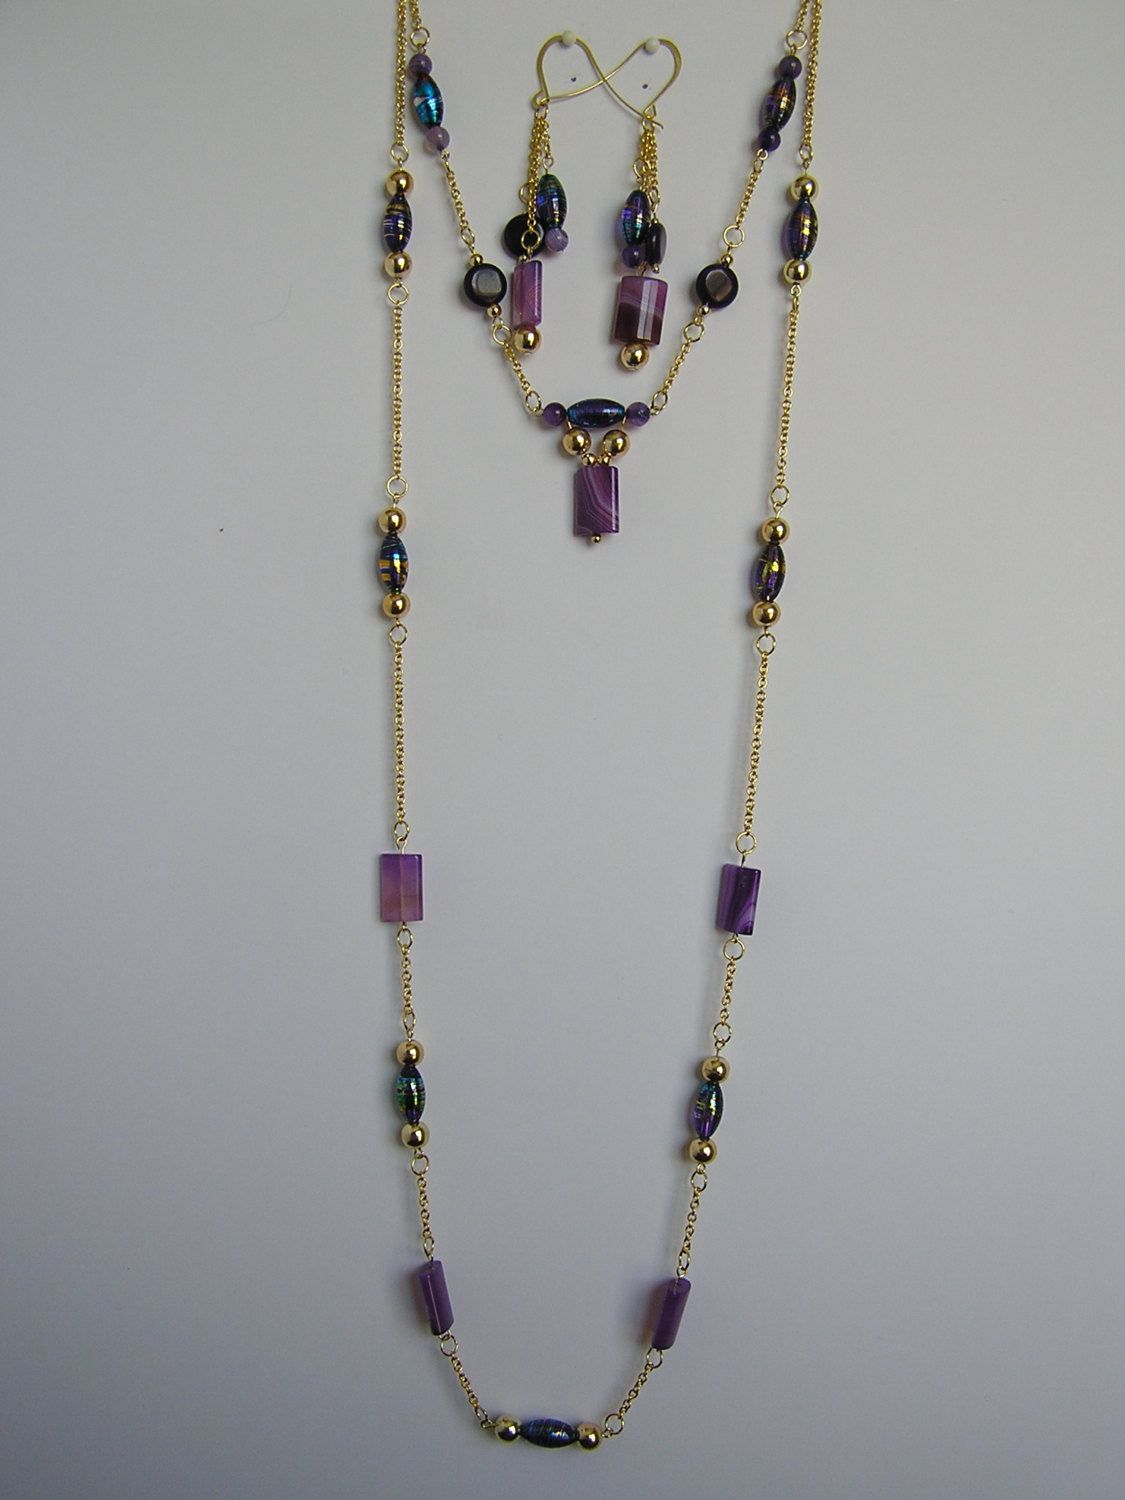 2 strand necklace and earring set in purple and gold. $15.00, via Etsy.